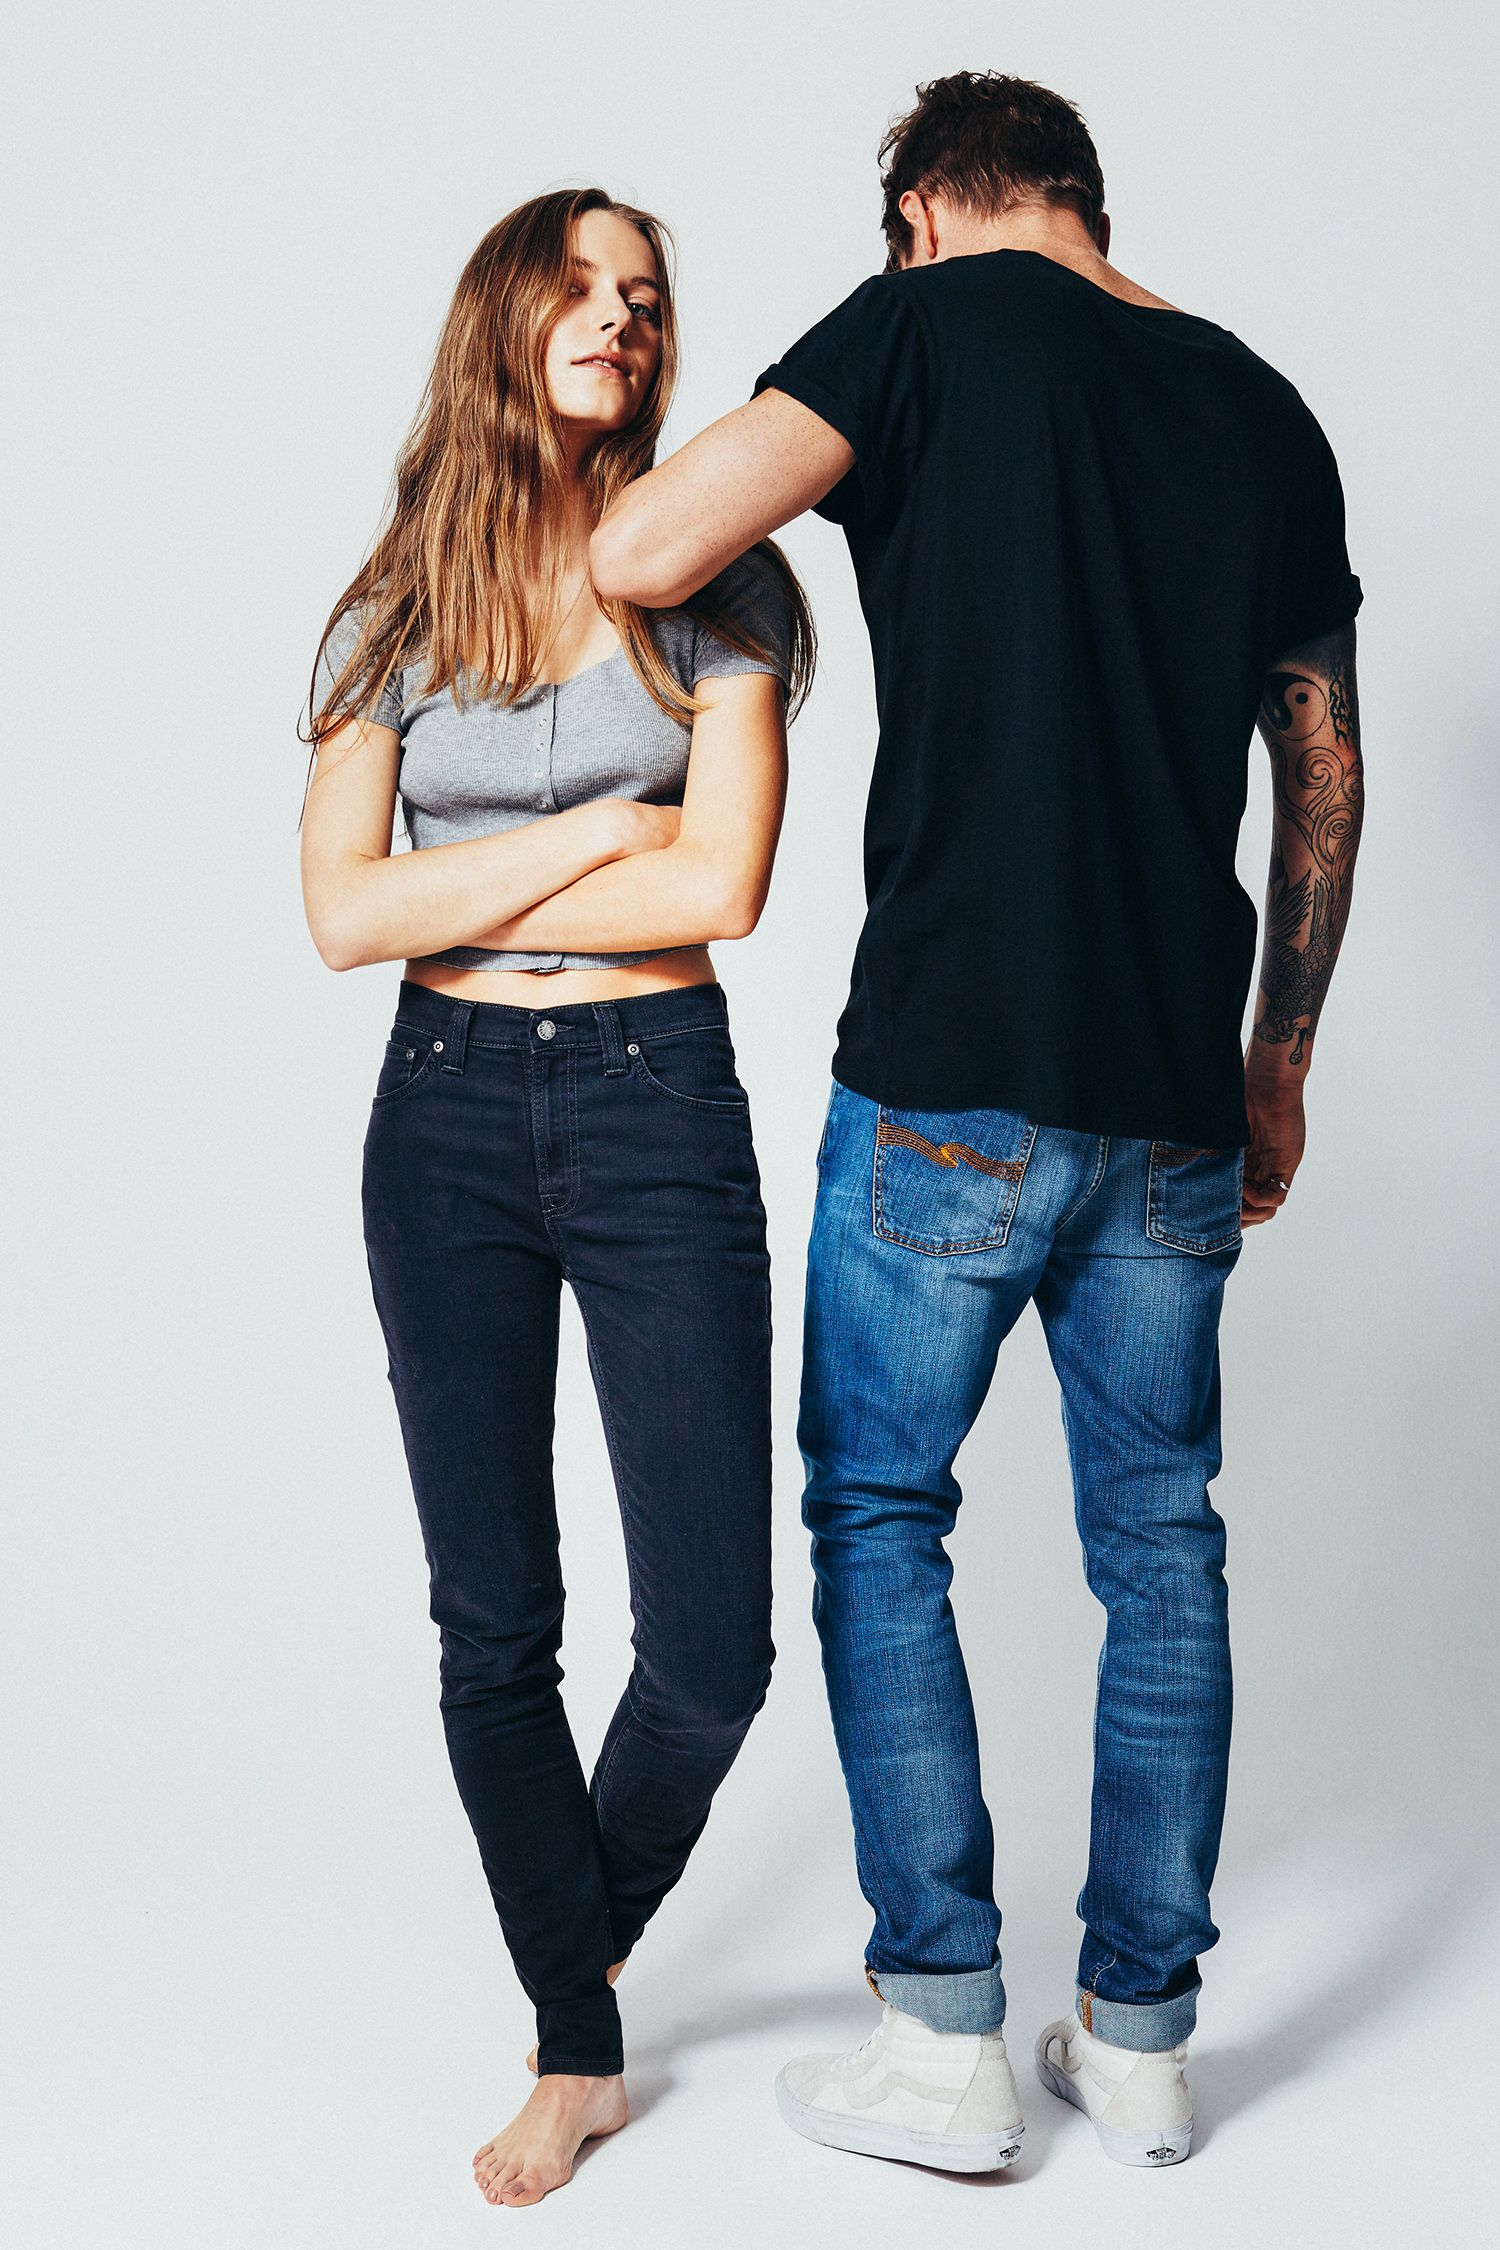 Nudie Jeans (Pipe Led) organic cotton, made in Italy. Jeans pipe led